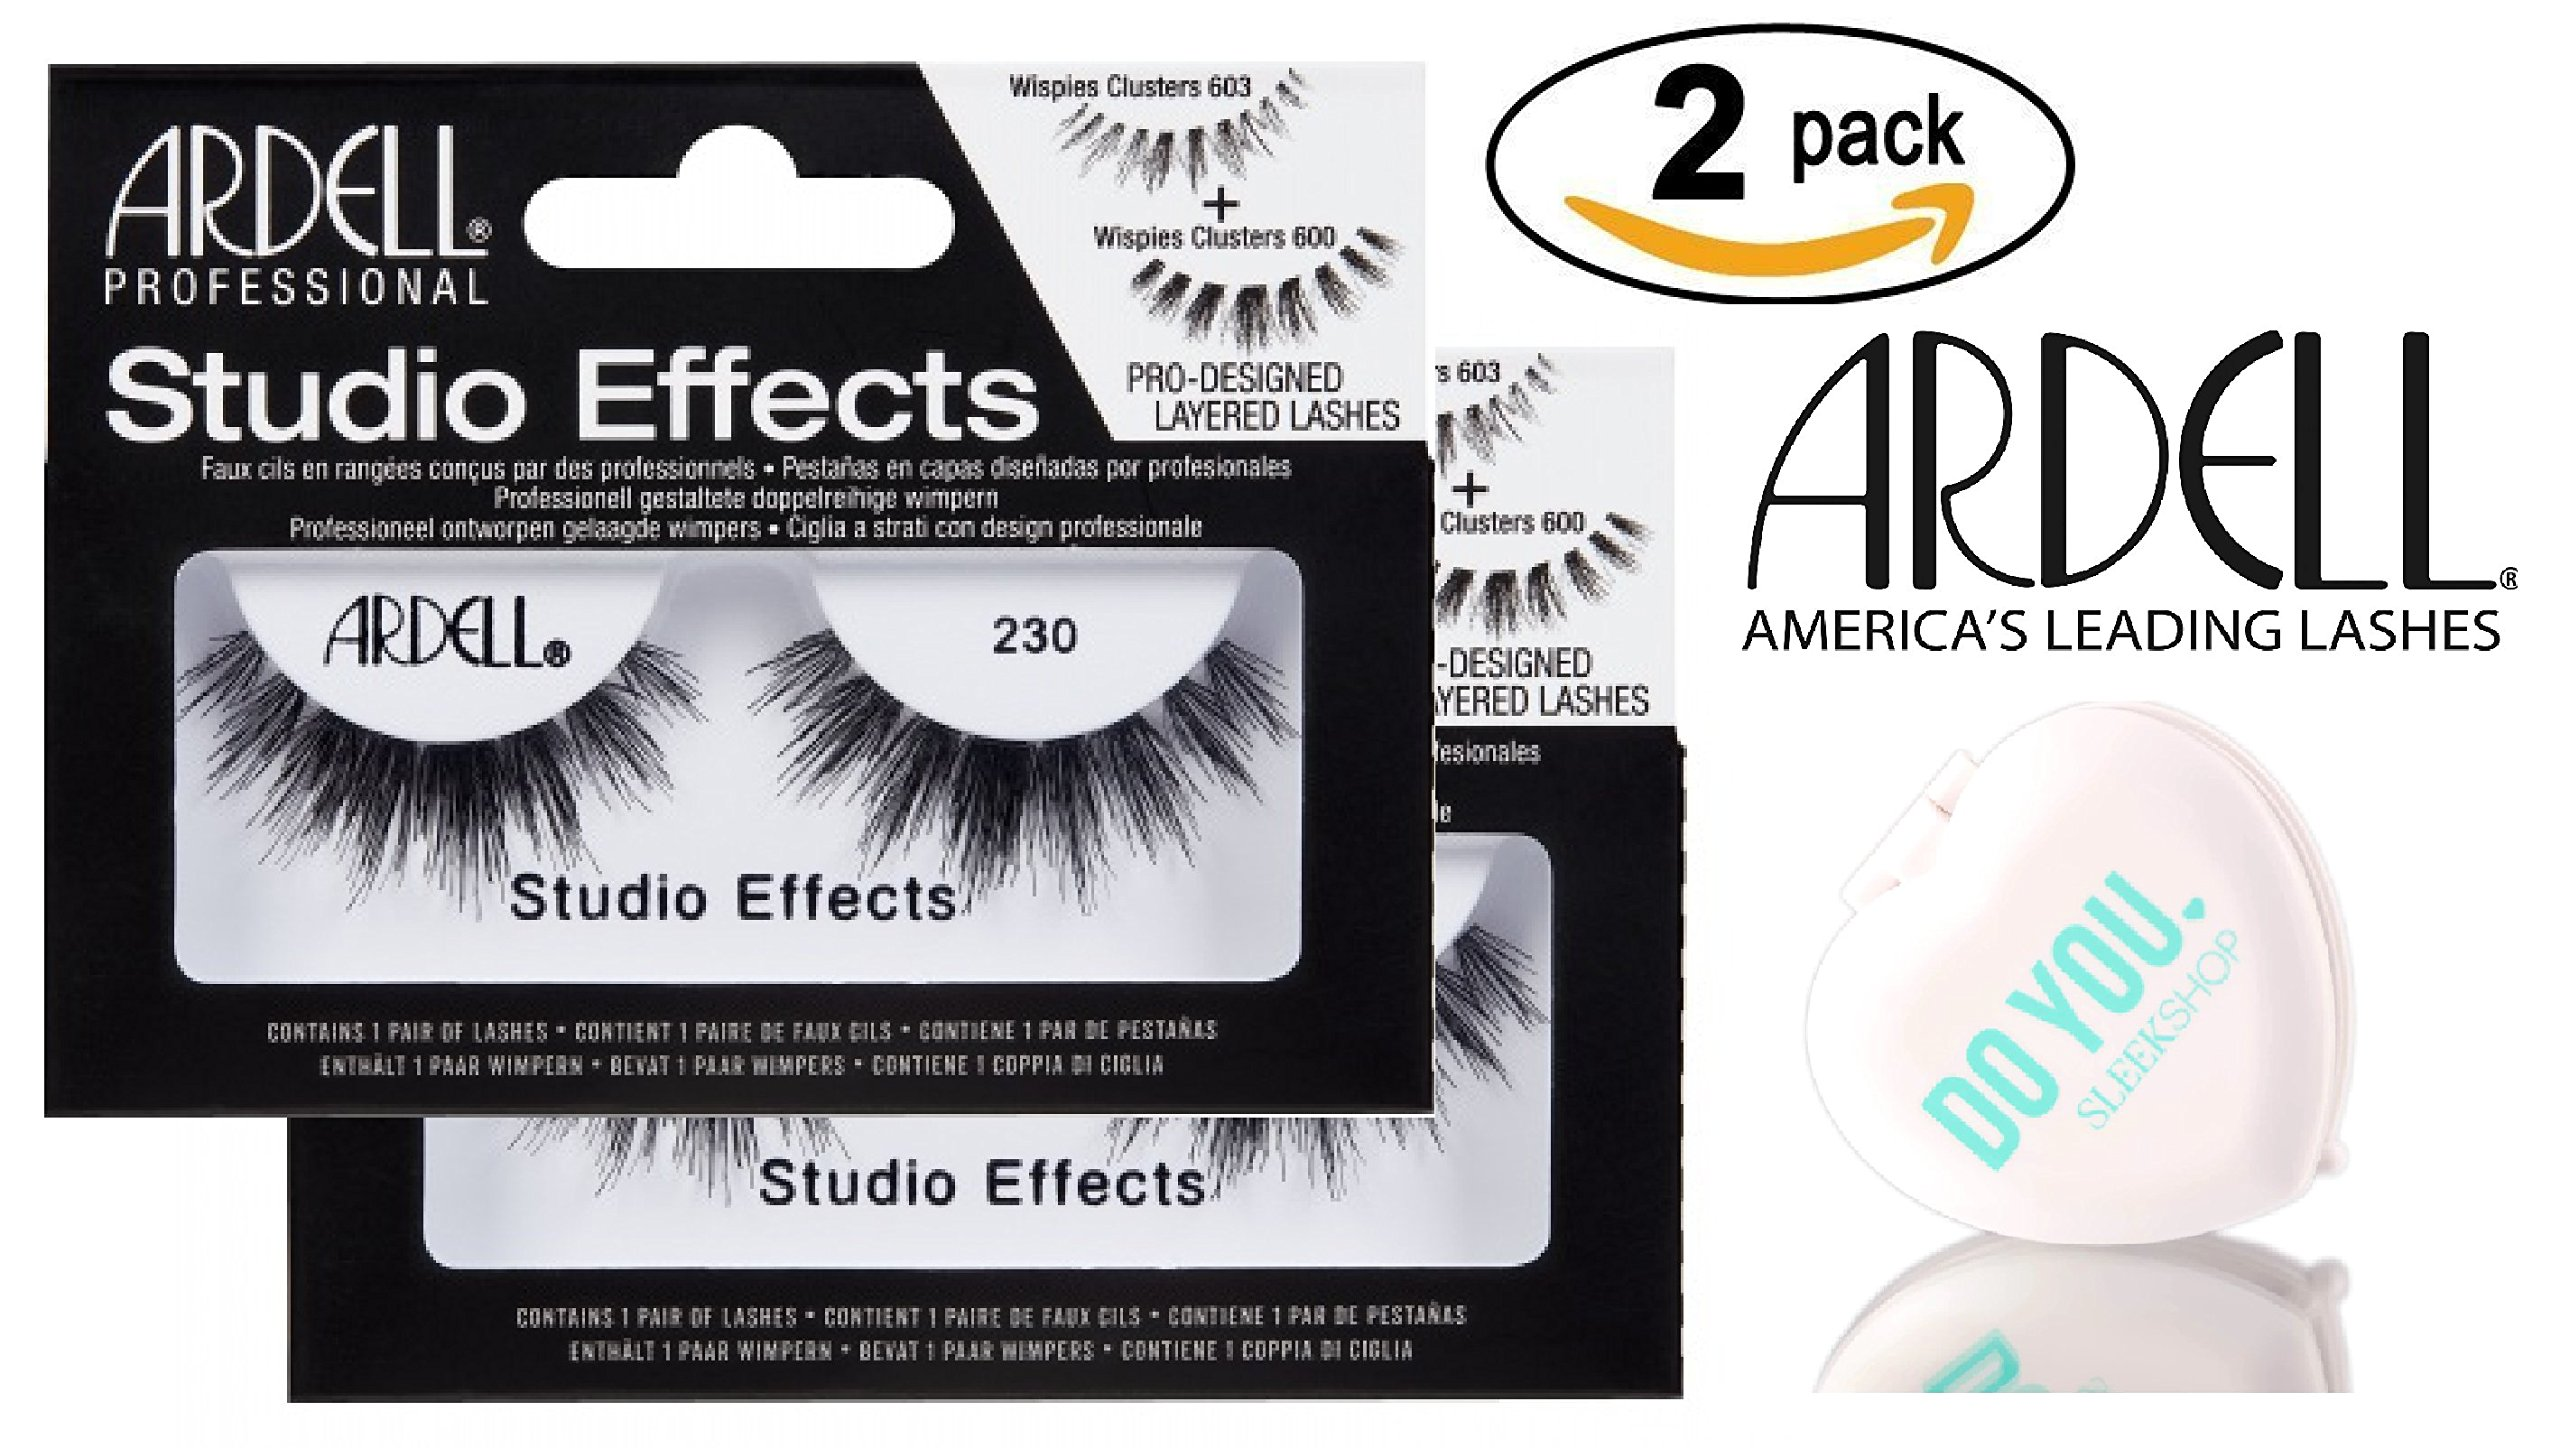 b4c5da854c0 Ardell Professional STUDIO EFFECTS Custom Layered Lashes, 2-pack (with  Sleek Compact Mirror